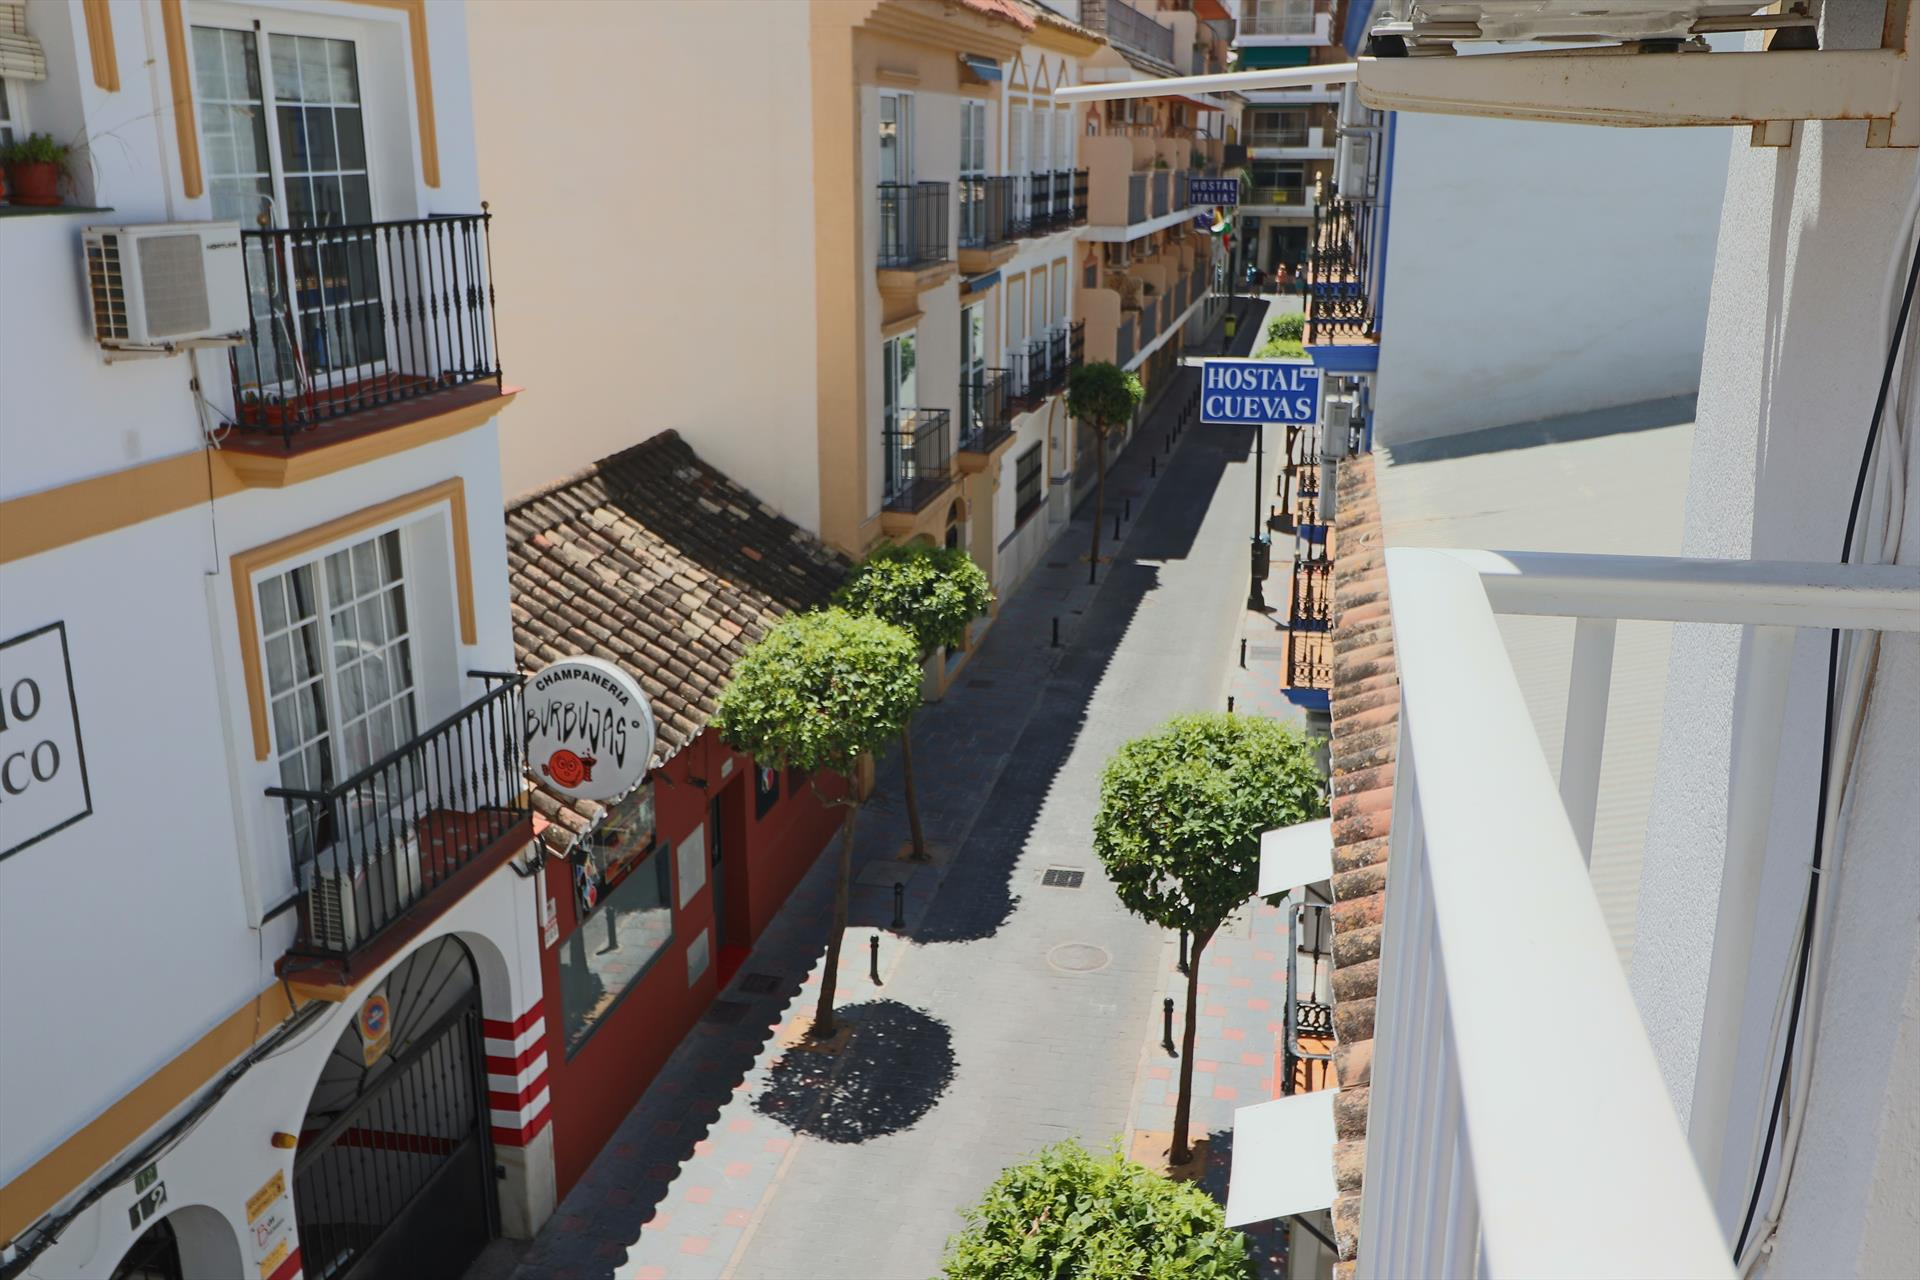 Capitan apartment ihacc0211,Apartment in Fuengirola, Andalusia, Spain for 4 persons...